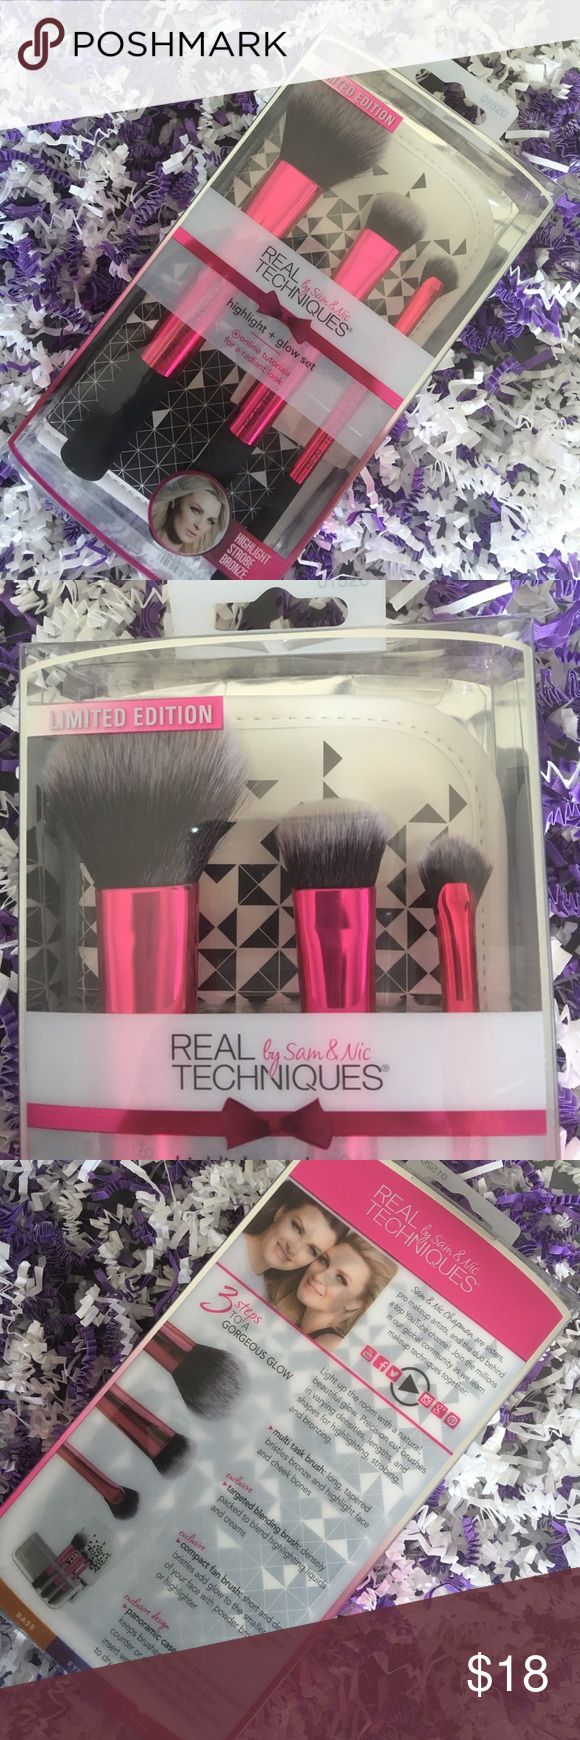 Real Techniques Highlight & Glow Set Real Techniques Highlight and Glow Limited Edition Set. This set features brushes, multi task brush, blending brush, and compact fan brush. These are brand new in box, never opened or used. Real Techniques Makeup Brushes & Tools